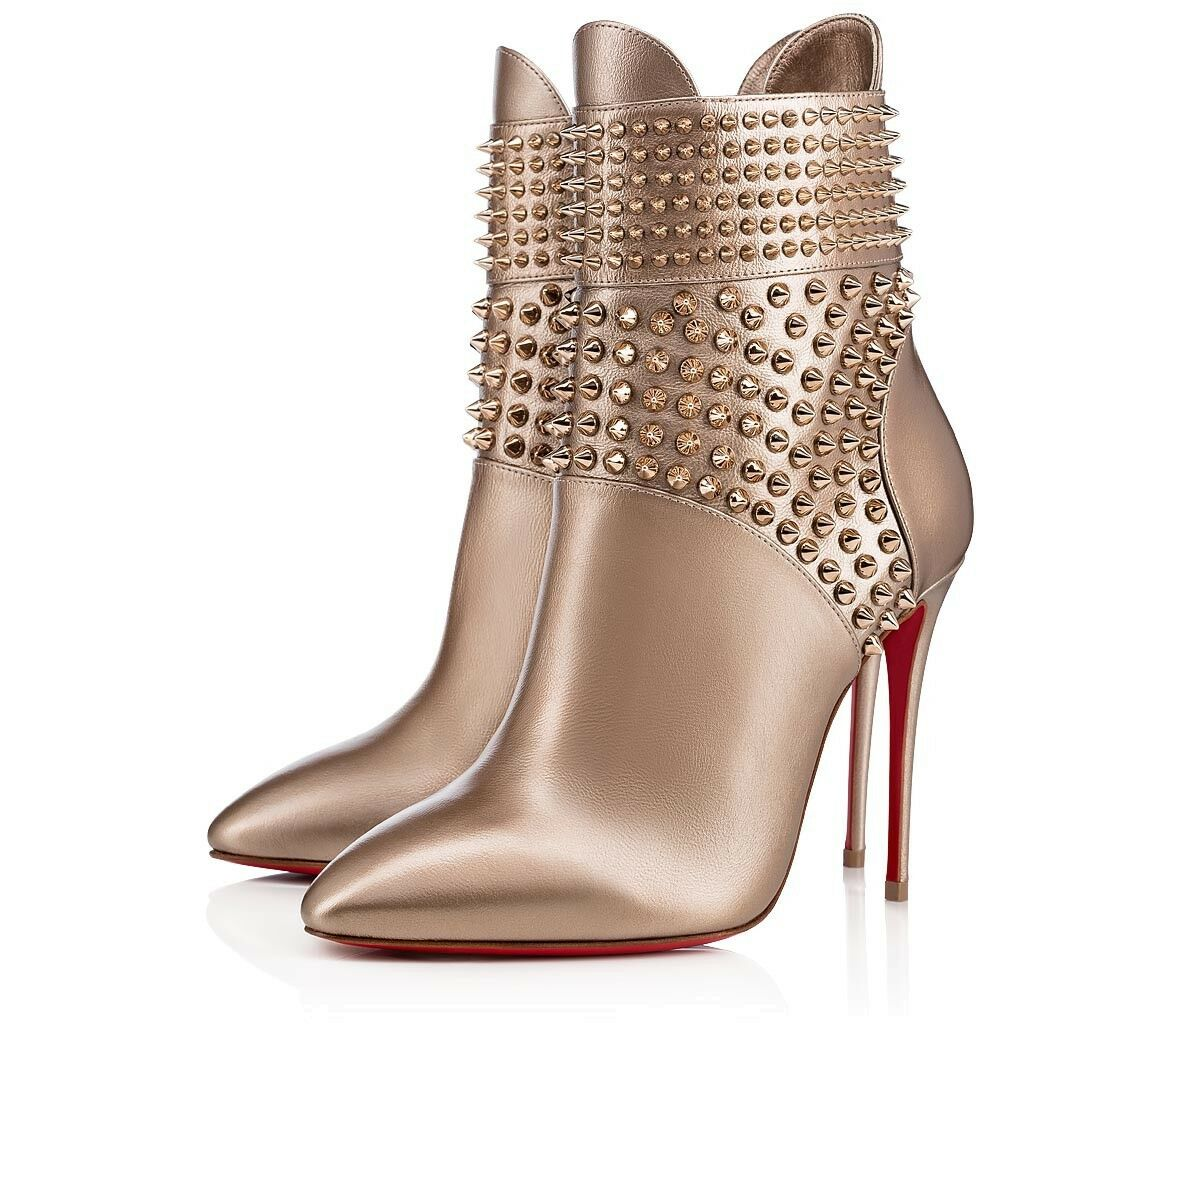 NIB Christian Louboutin Hongroise 100 Colombe gold Spike Ankle Heel Bootie 35